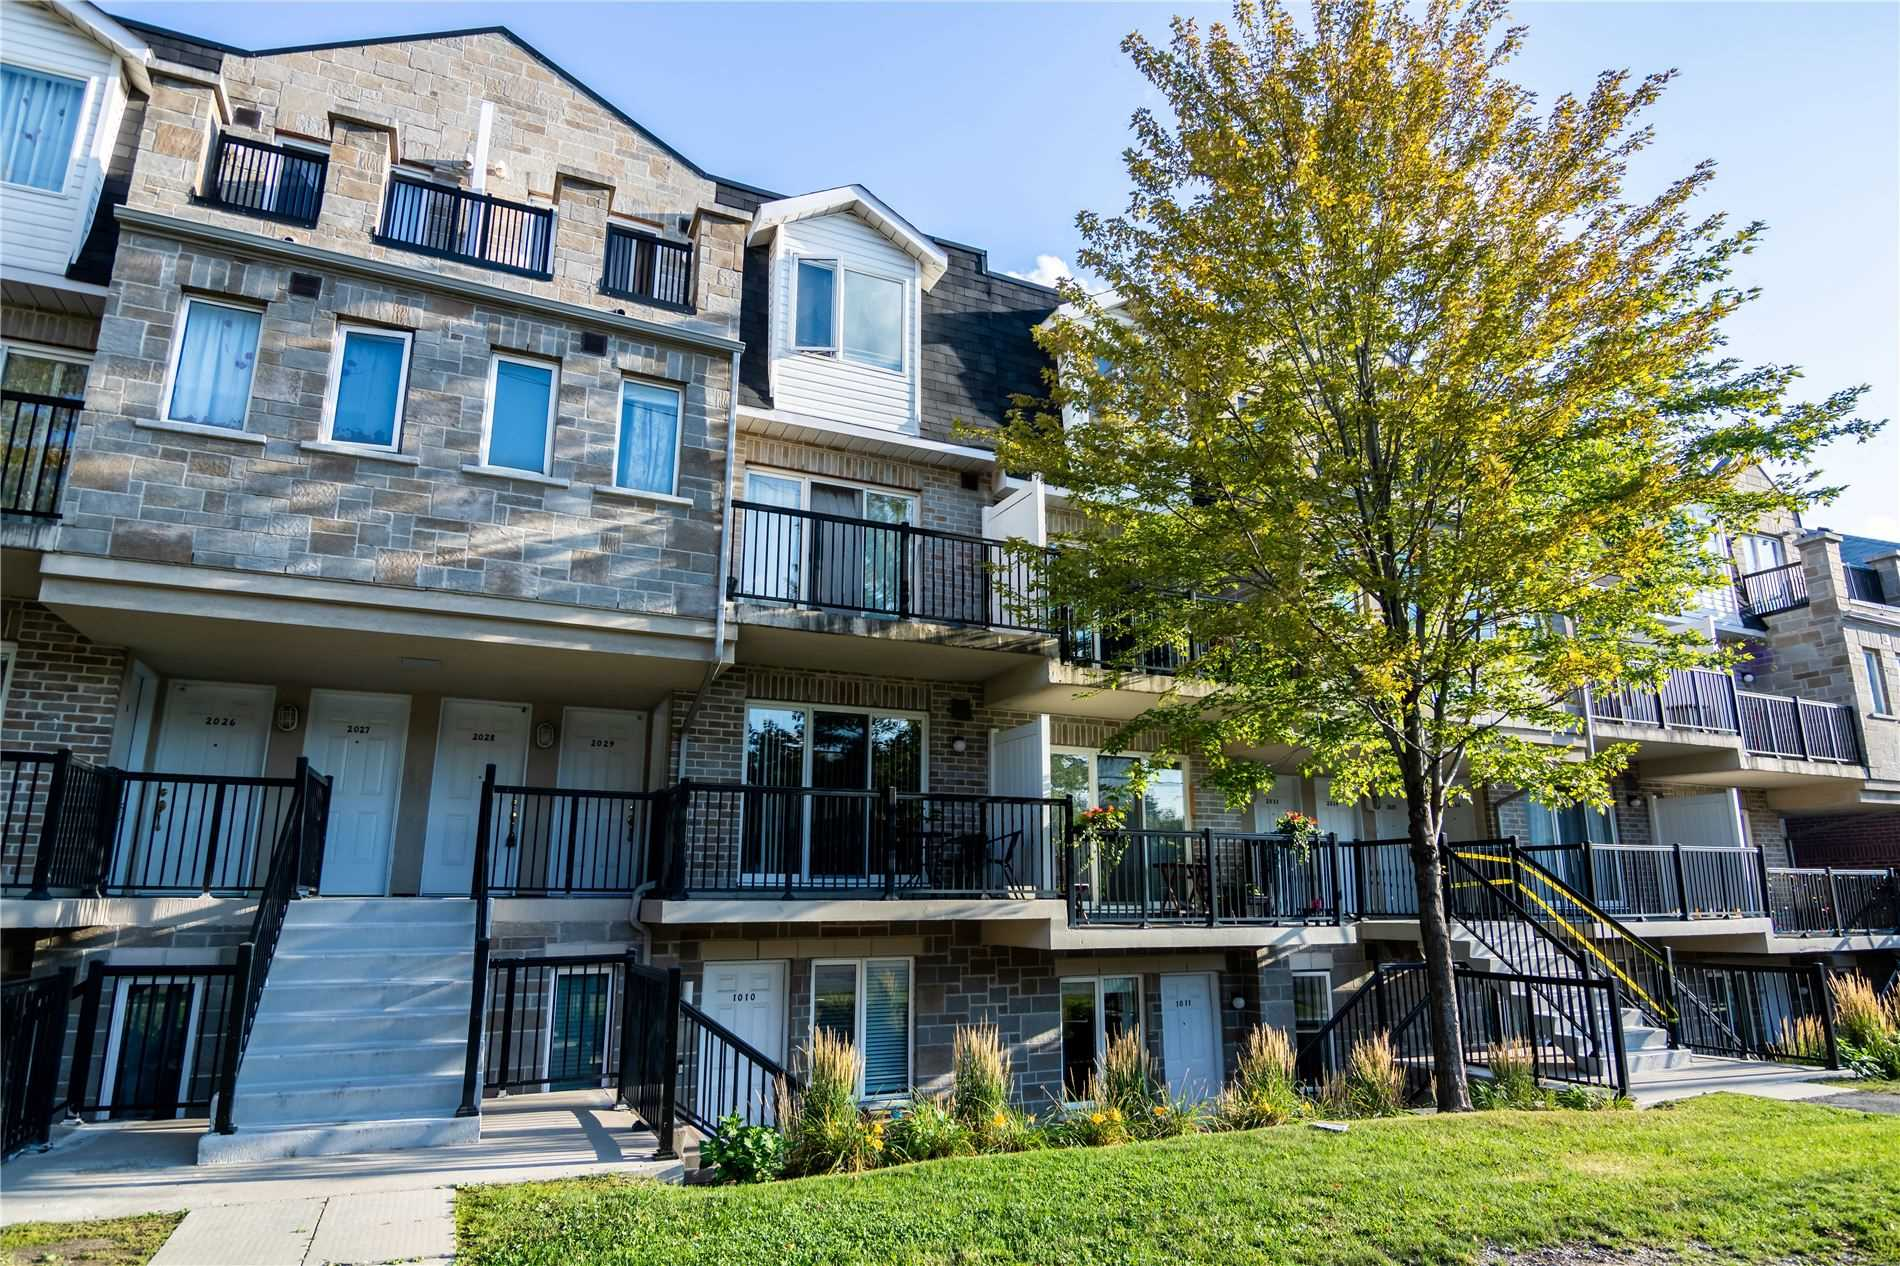 3025 Finch Ave, Toronto, Ontario M9M0A2, 2 Bedrooms Bedrooms, 5 Rooms Rooms,2 BathroomsBathrooms,Condo Townhouse,For Sale,Finch,W4897799